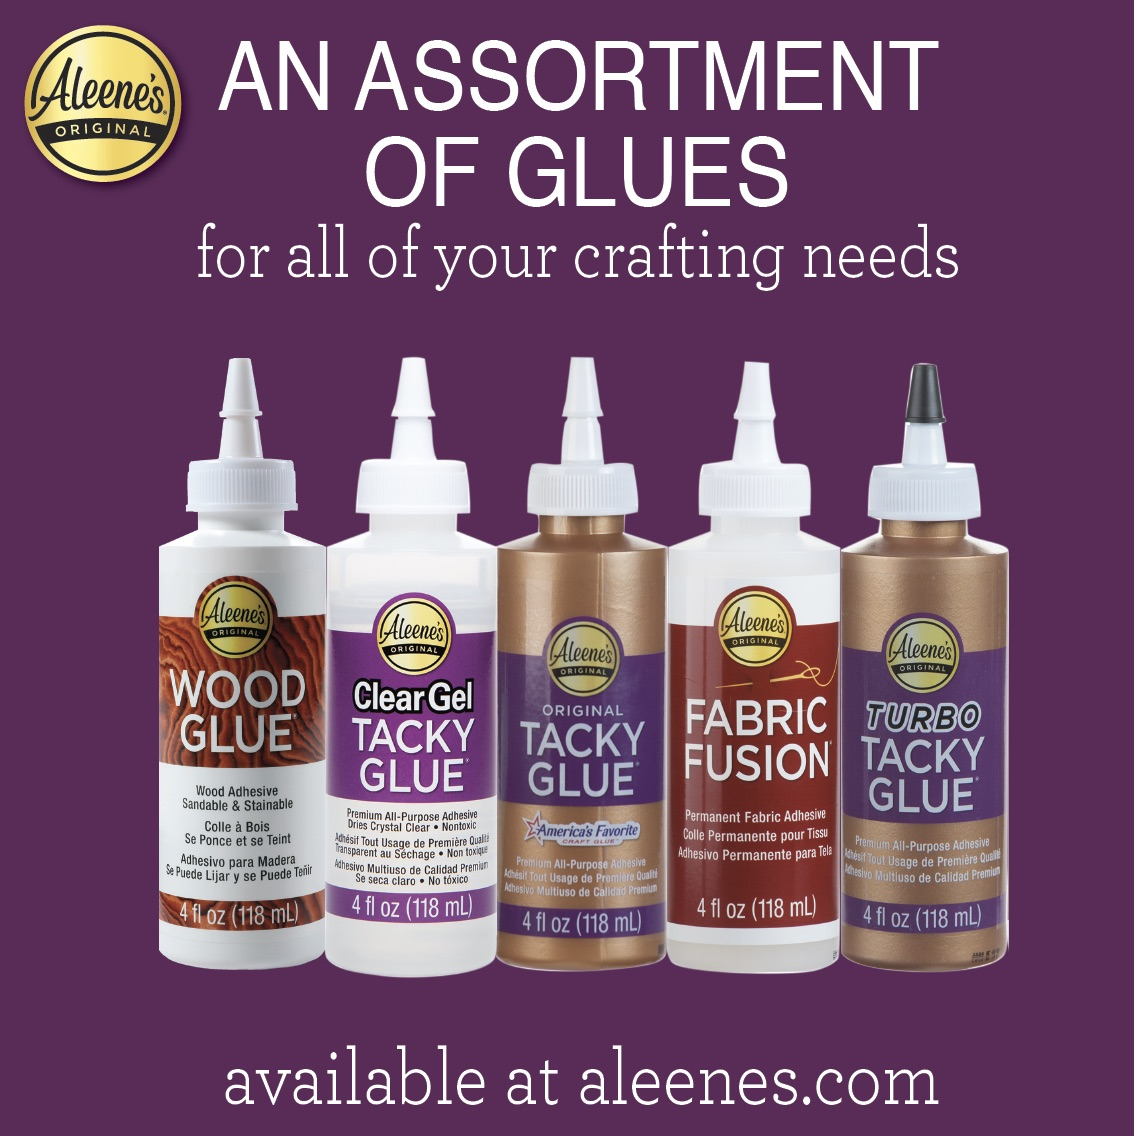 Aleene's Assortment of Glues